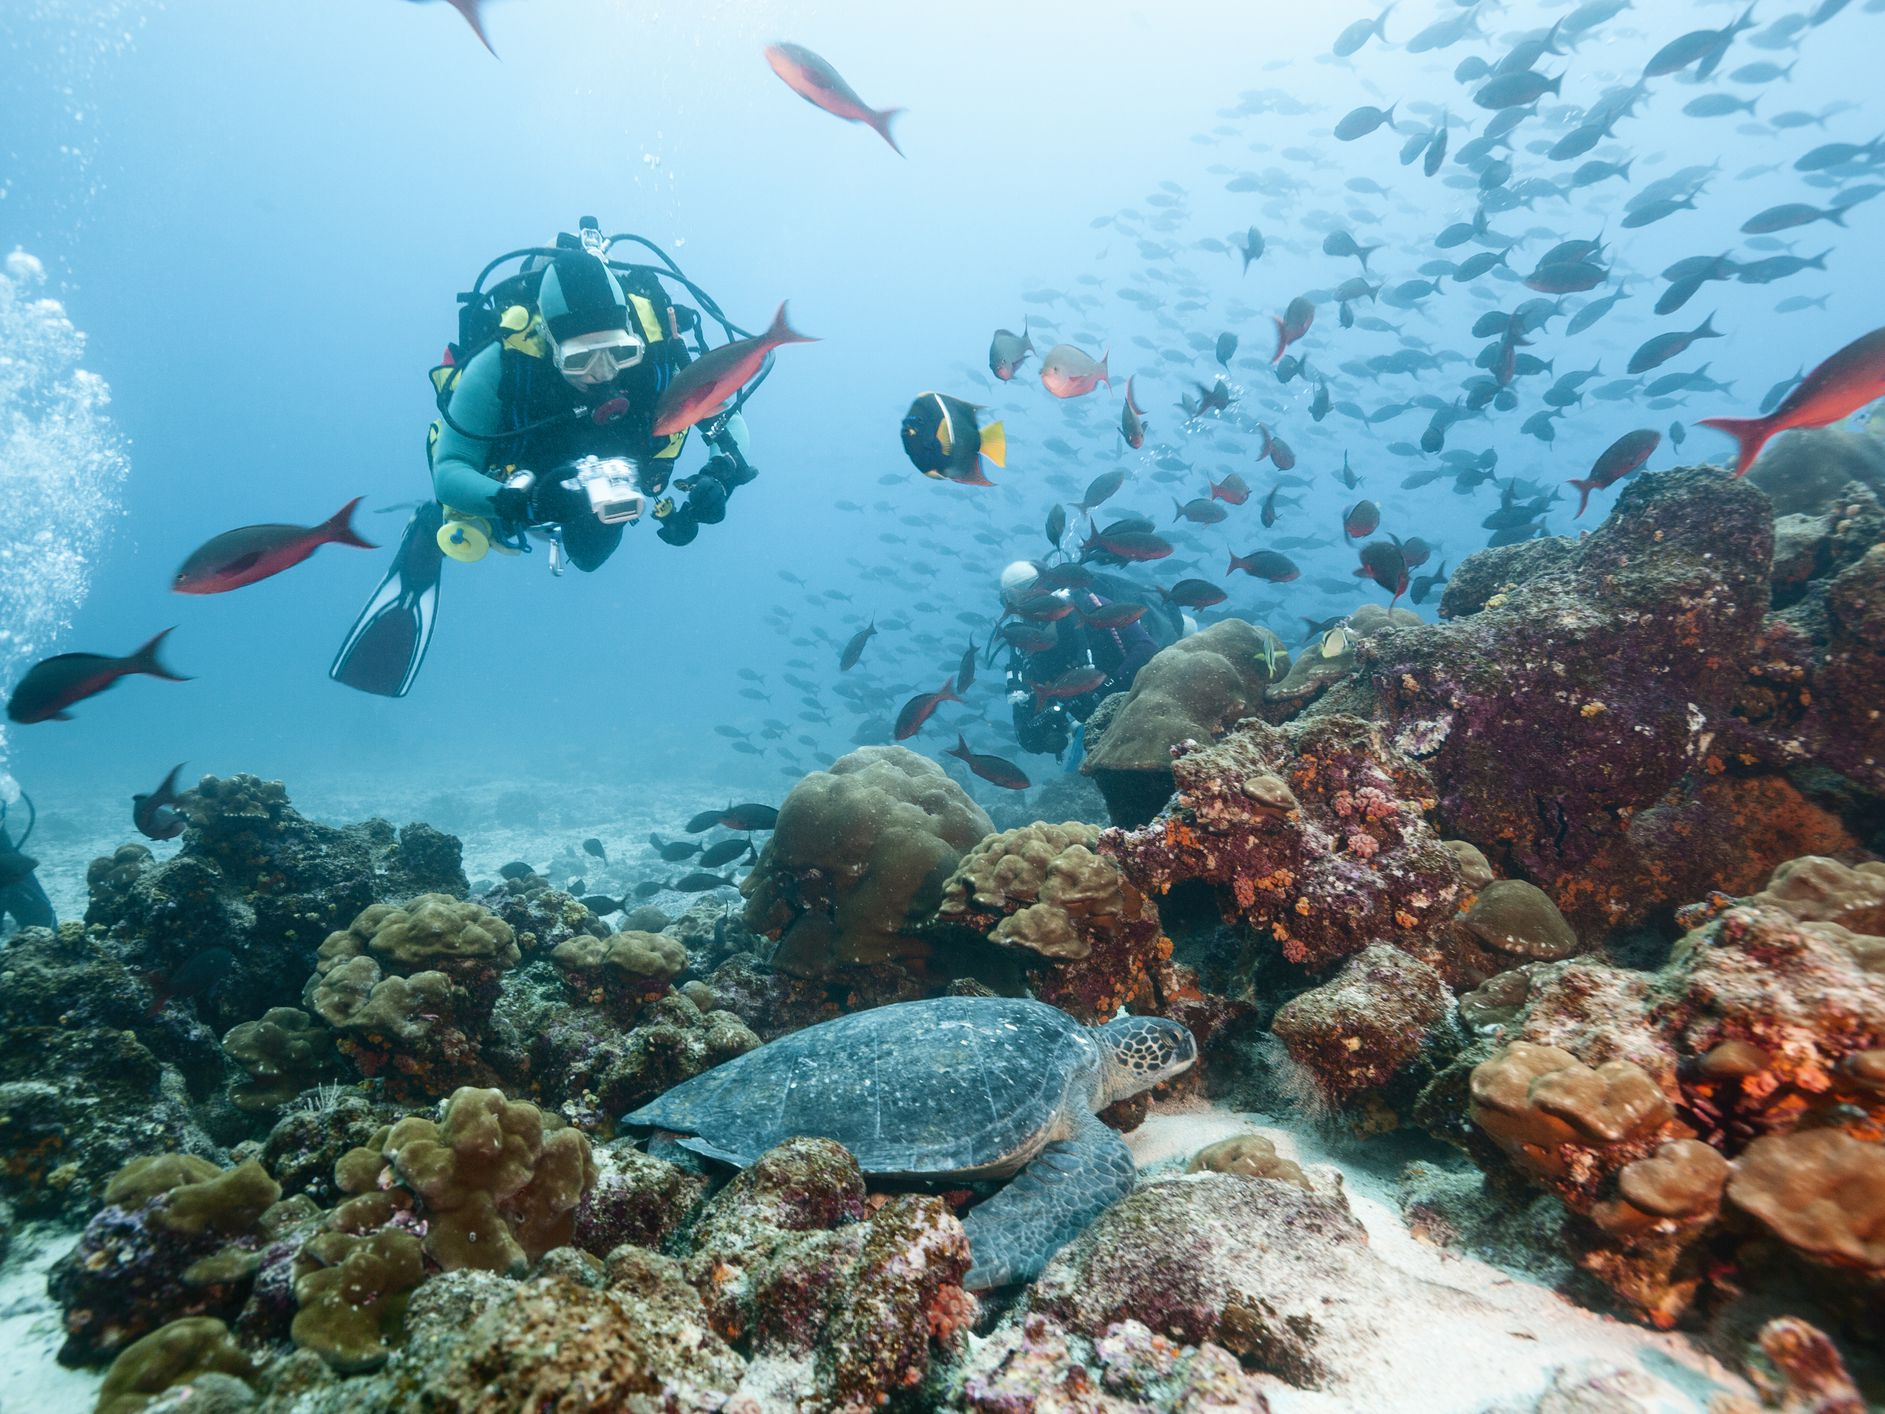 How Does Boyle's Law Apply to Scuba Diving?